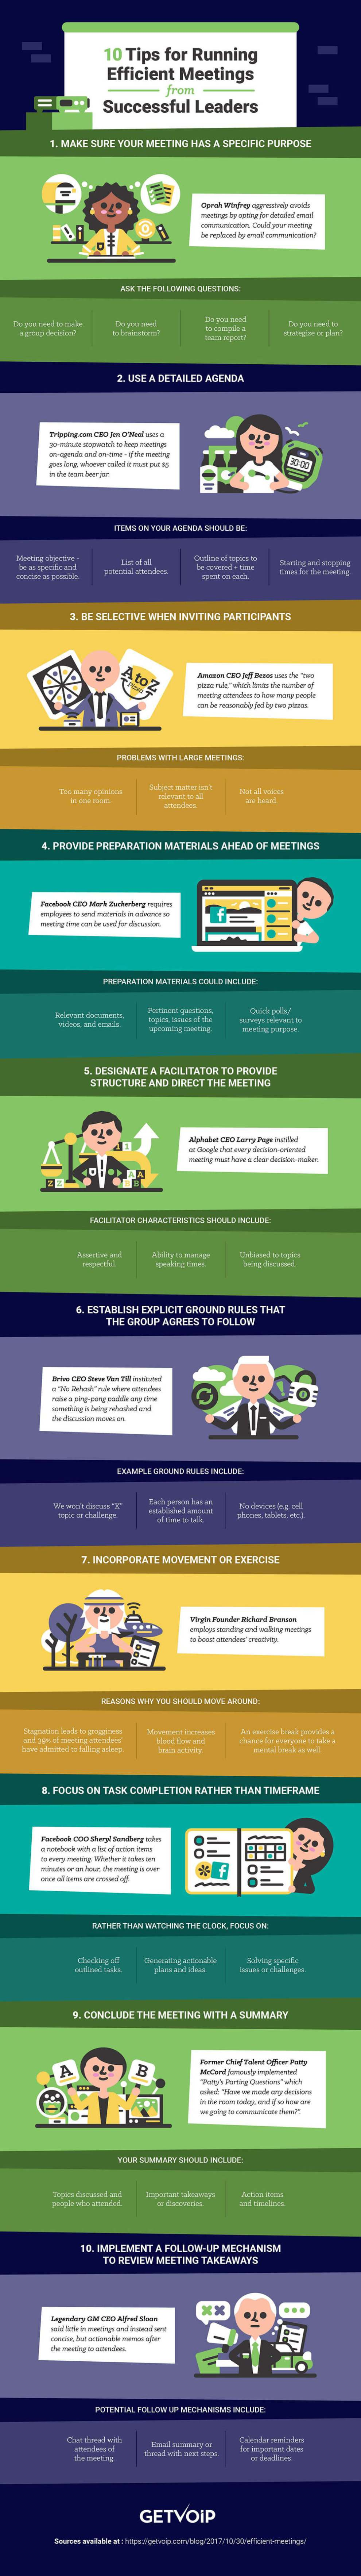 Infographic: 10 tips for running efficient meetings from successful leaders